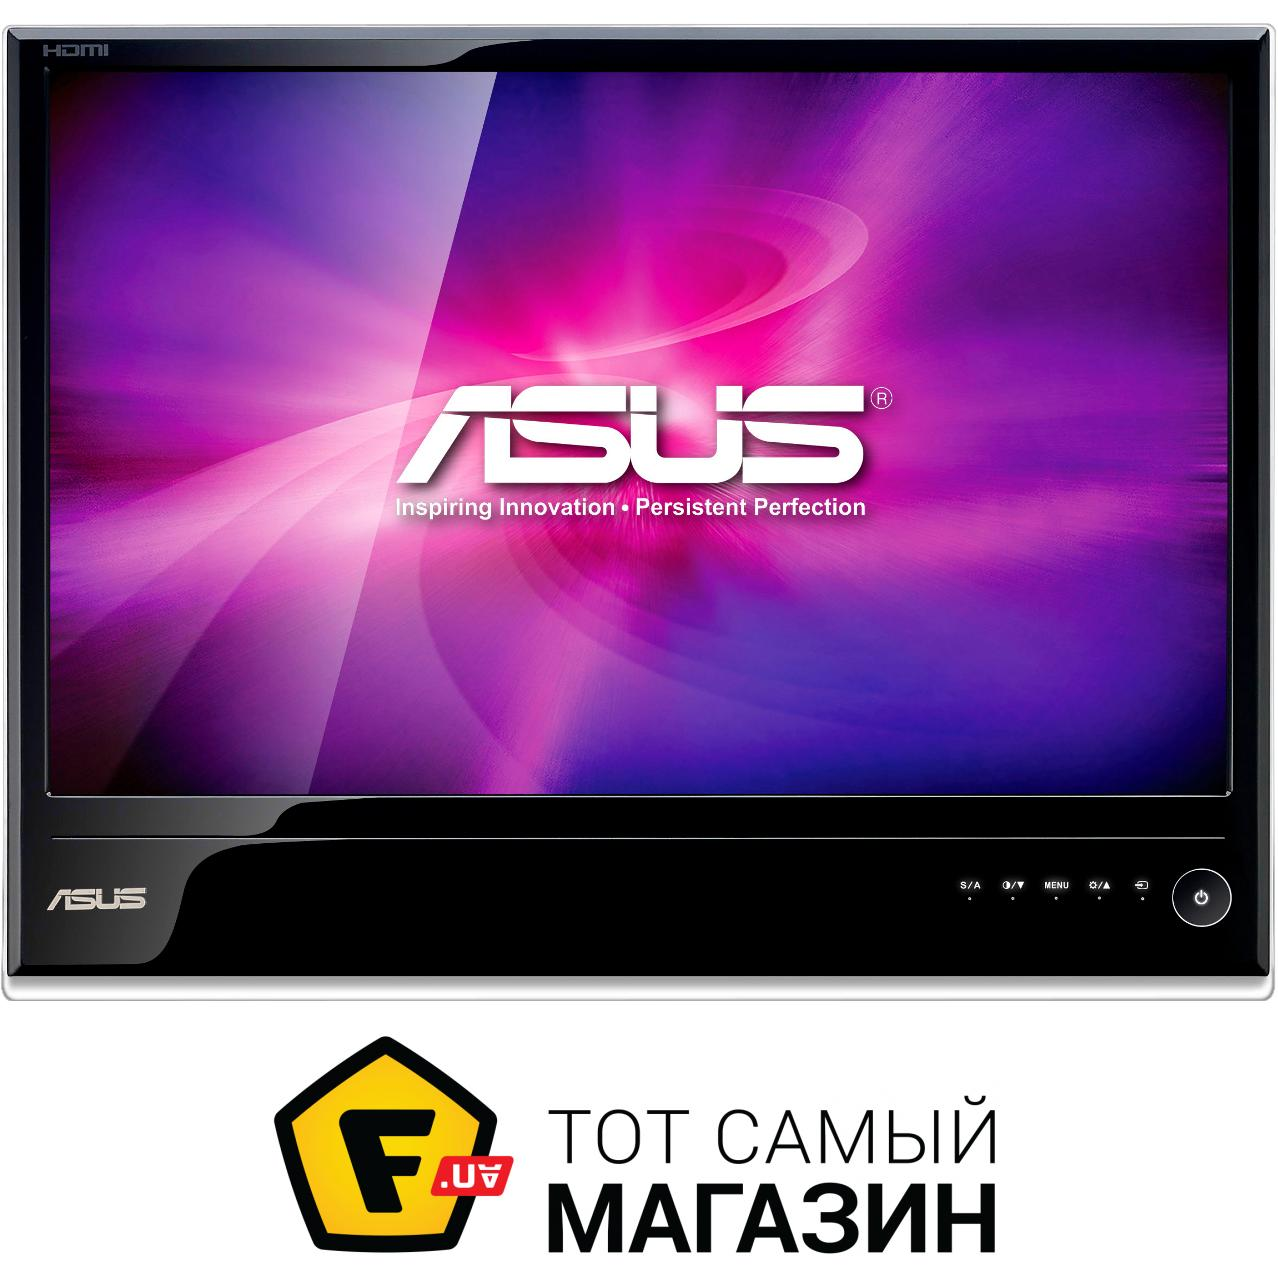 ASUS MS246H DRIVERS FOR WINDOWS VISTA